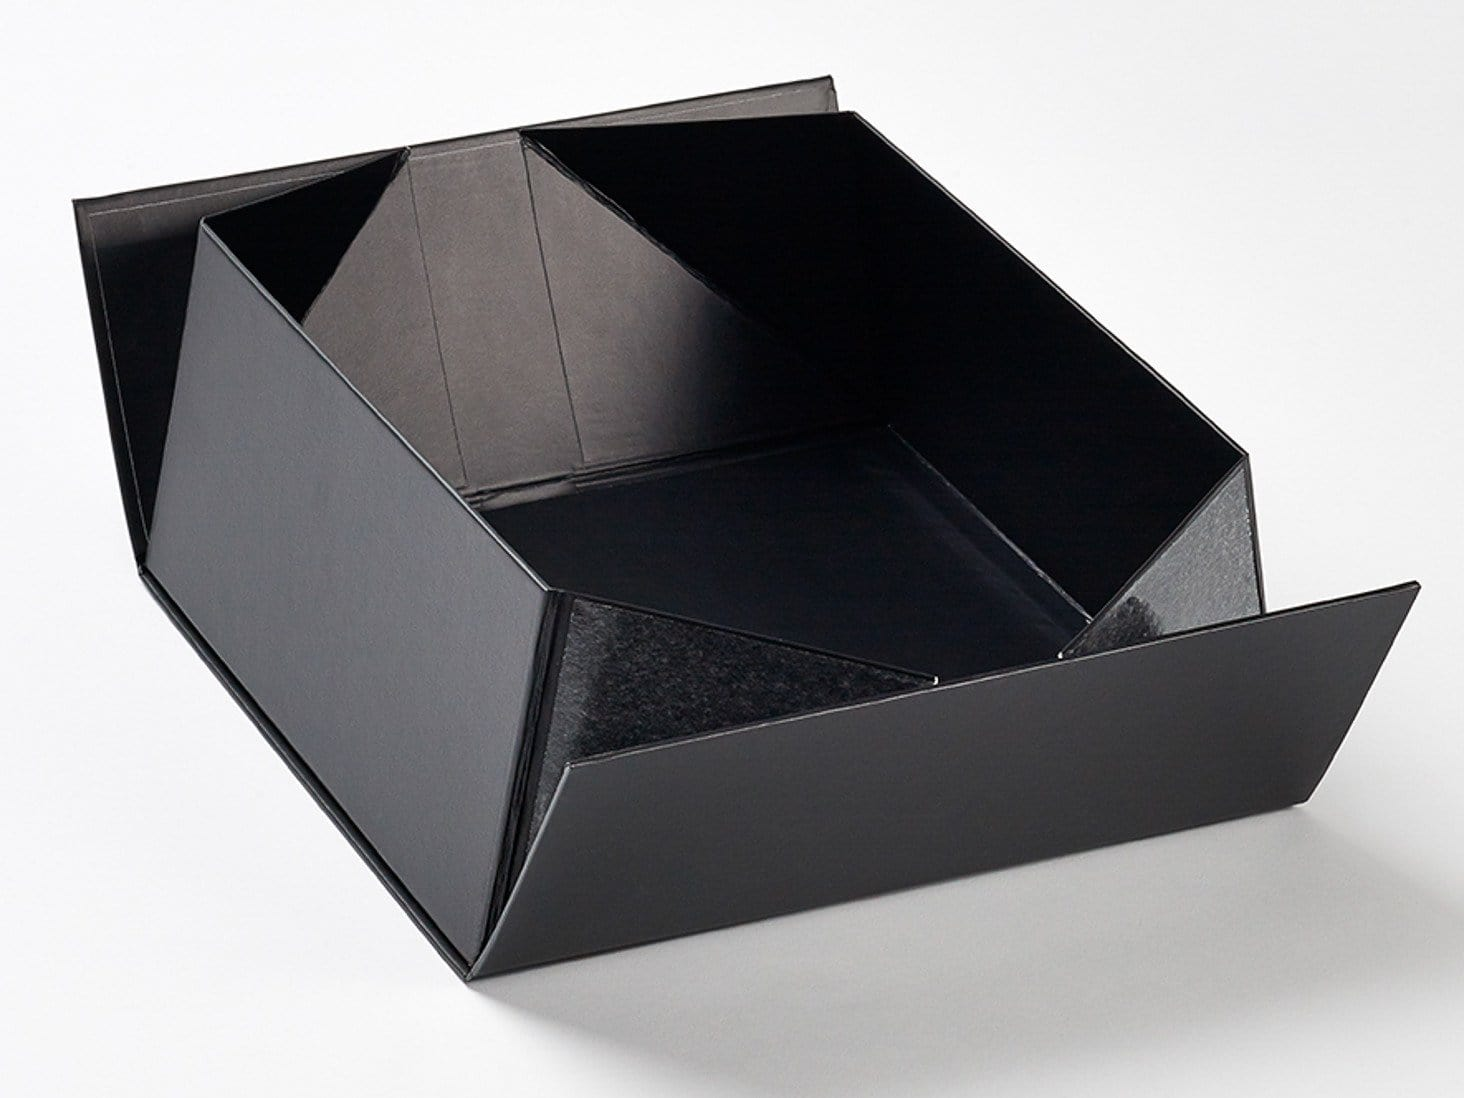 wholesale black medium lift off lid gift boxes from stock at